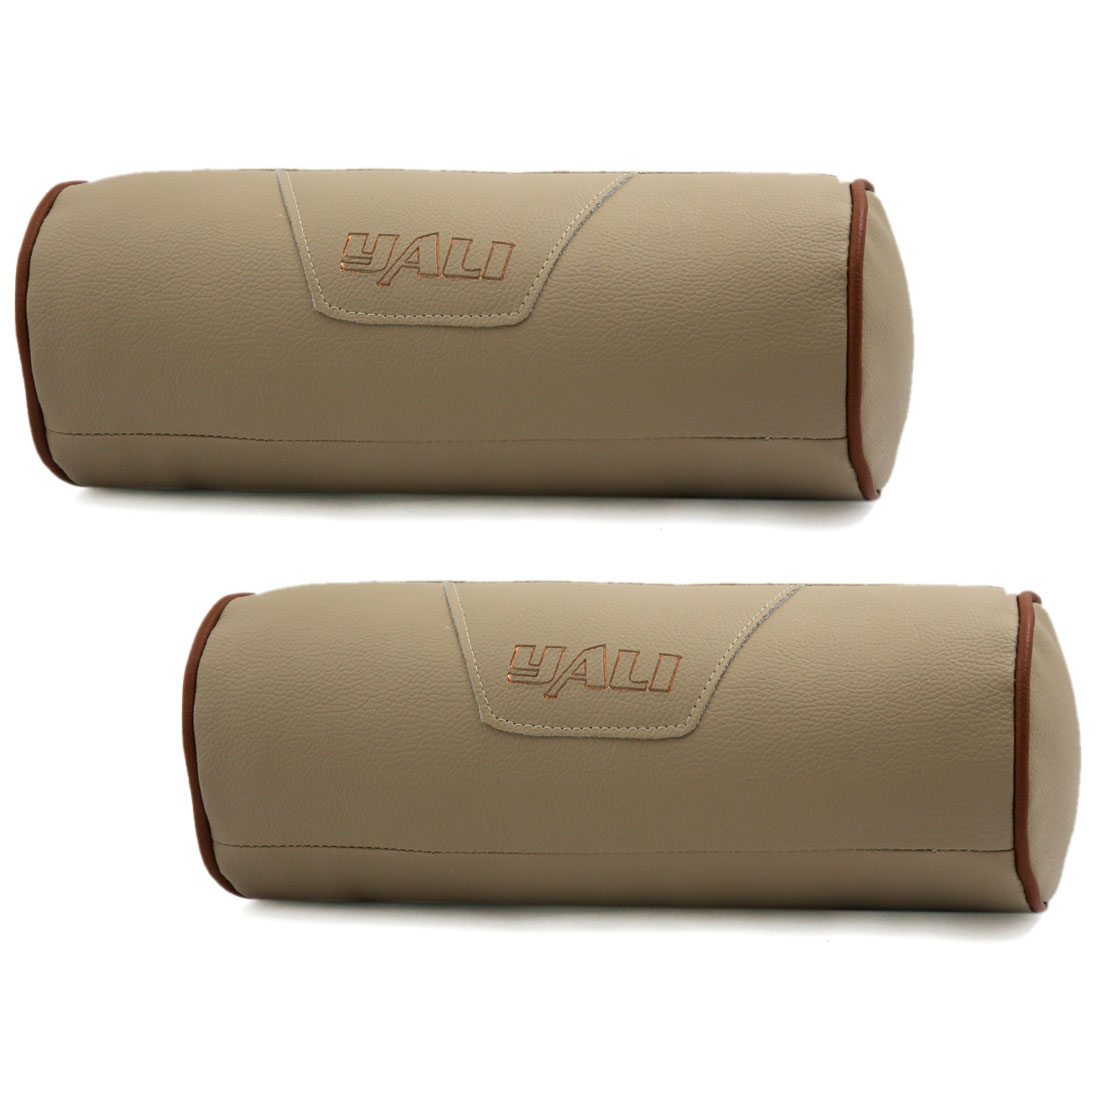 Cylinder Design Zipper Closure Faux Leather Elastic Band Pillow Neck Rest Support Cushion Beige for Car